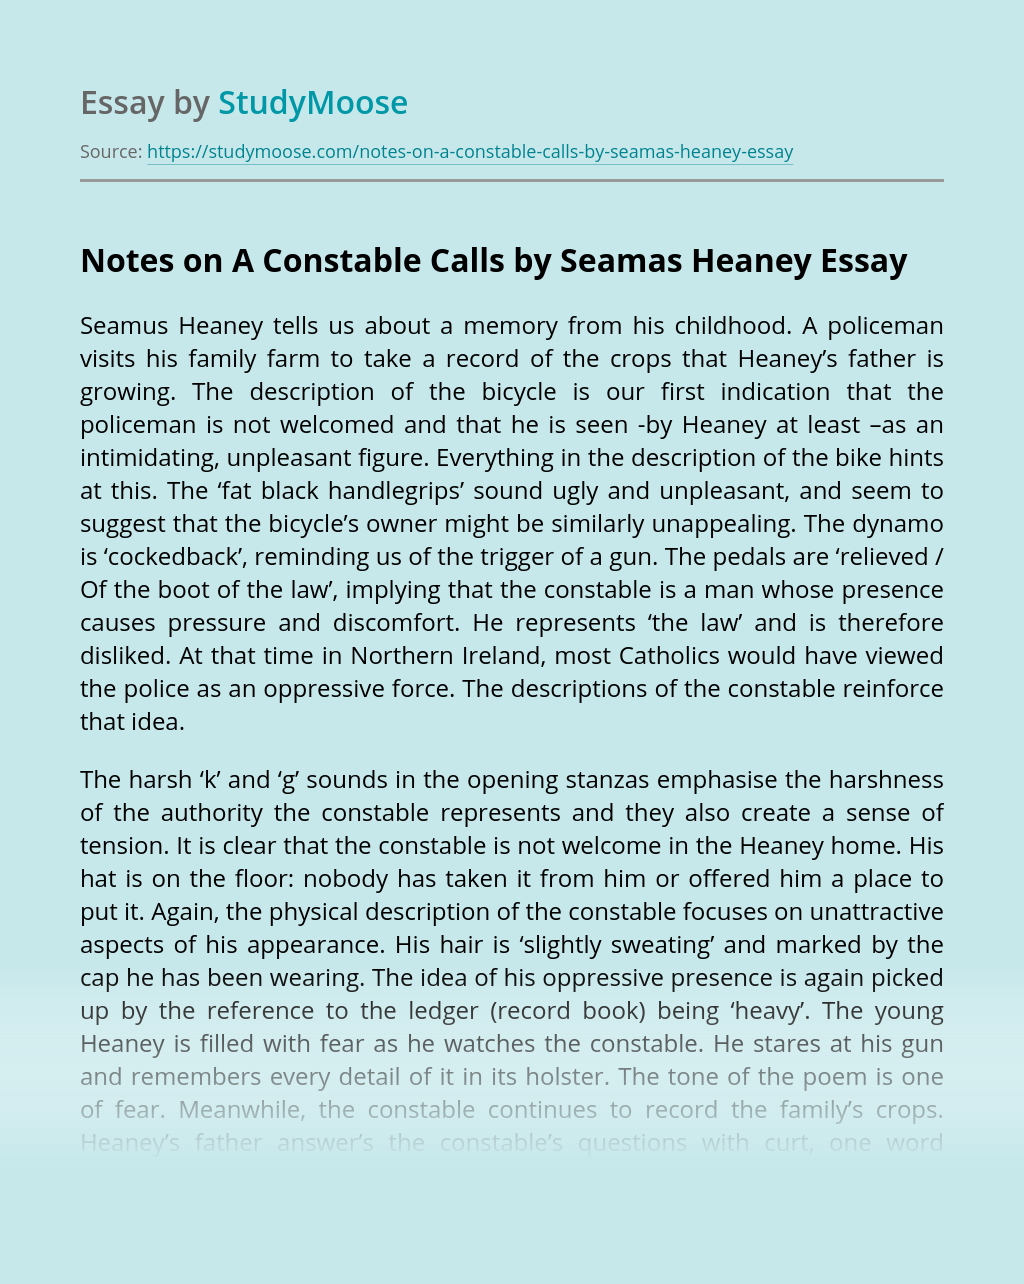 Notes on A Constable Calls by Seamas Heaney